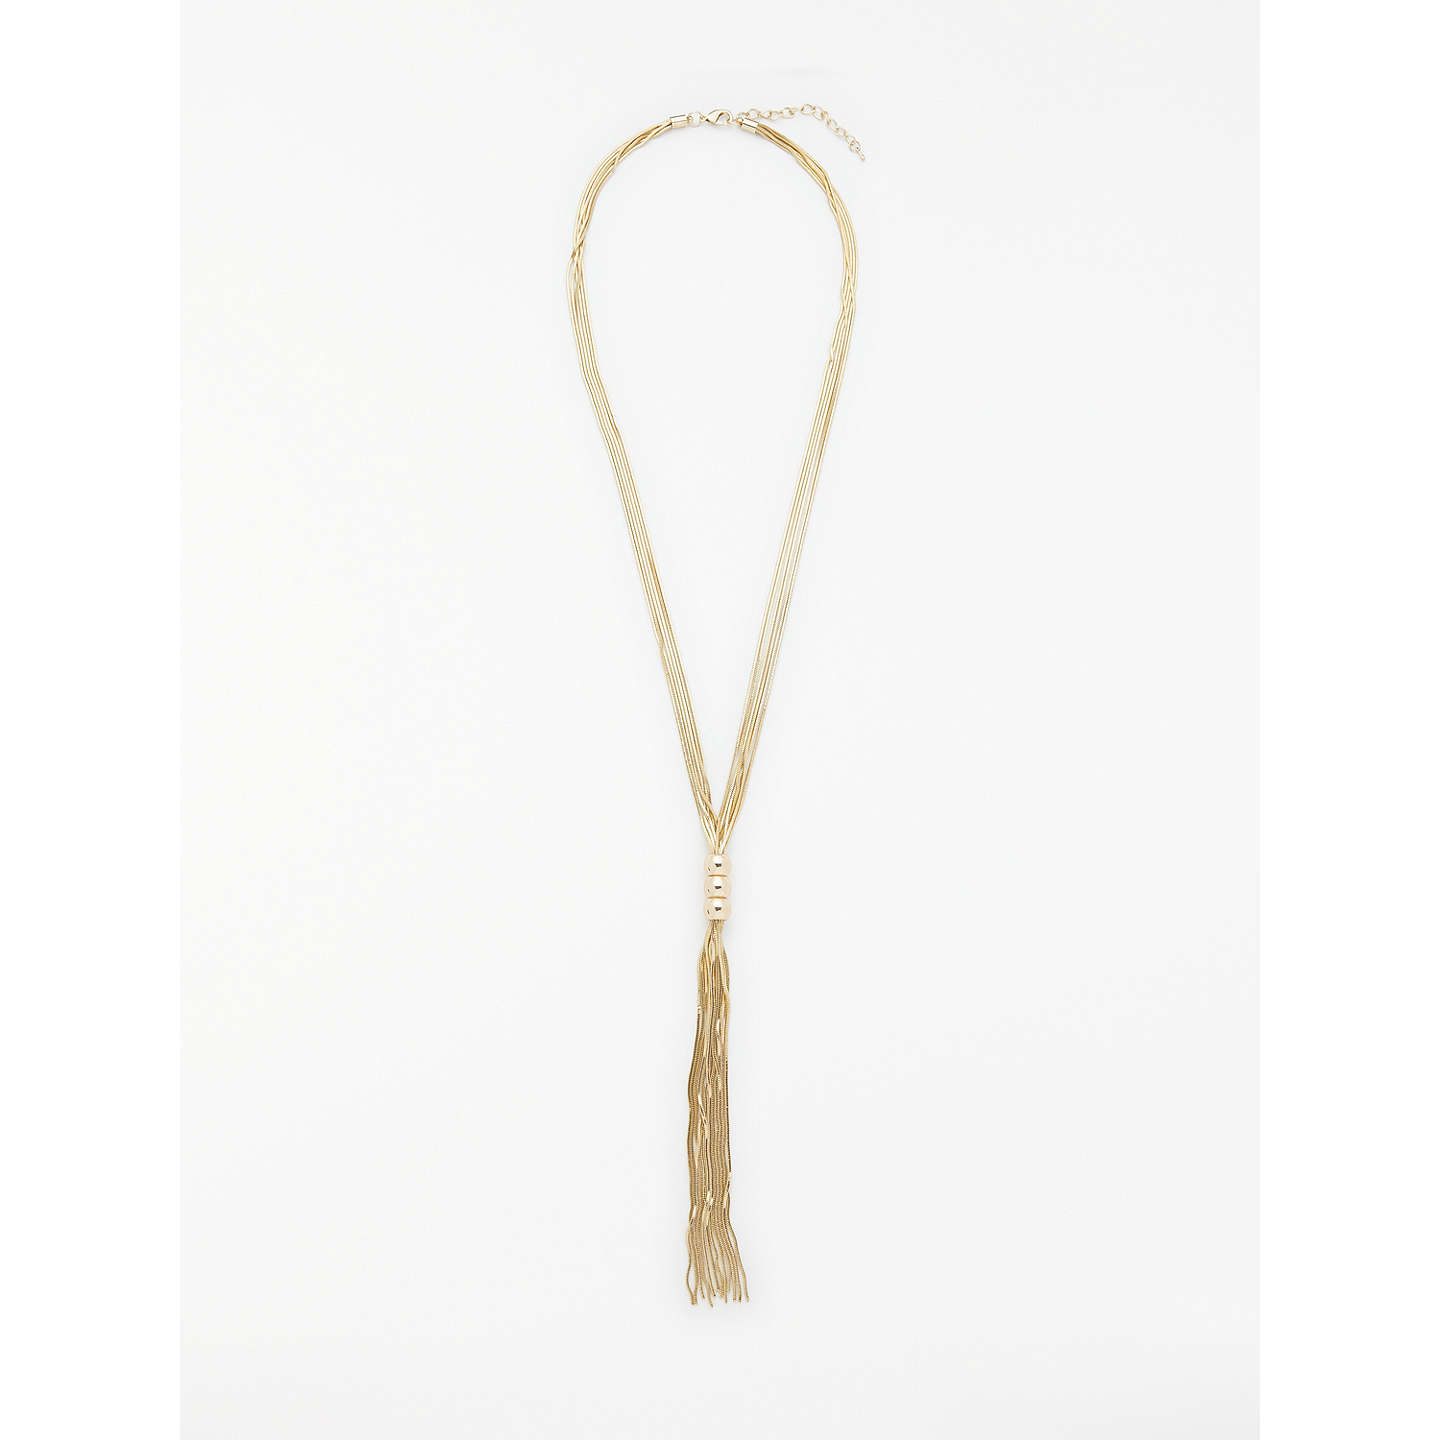 lee tao holst navy necklaces sale tassel necklace shop